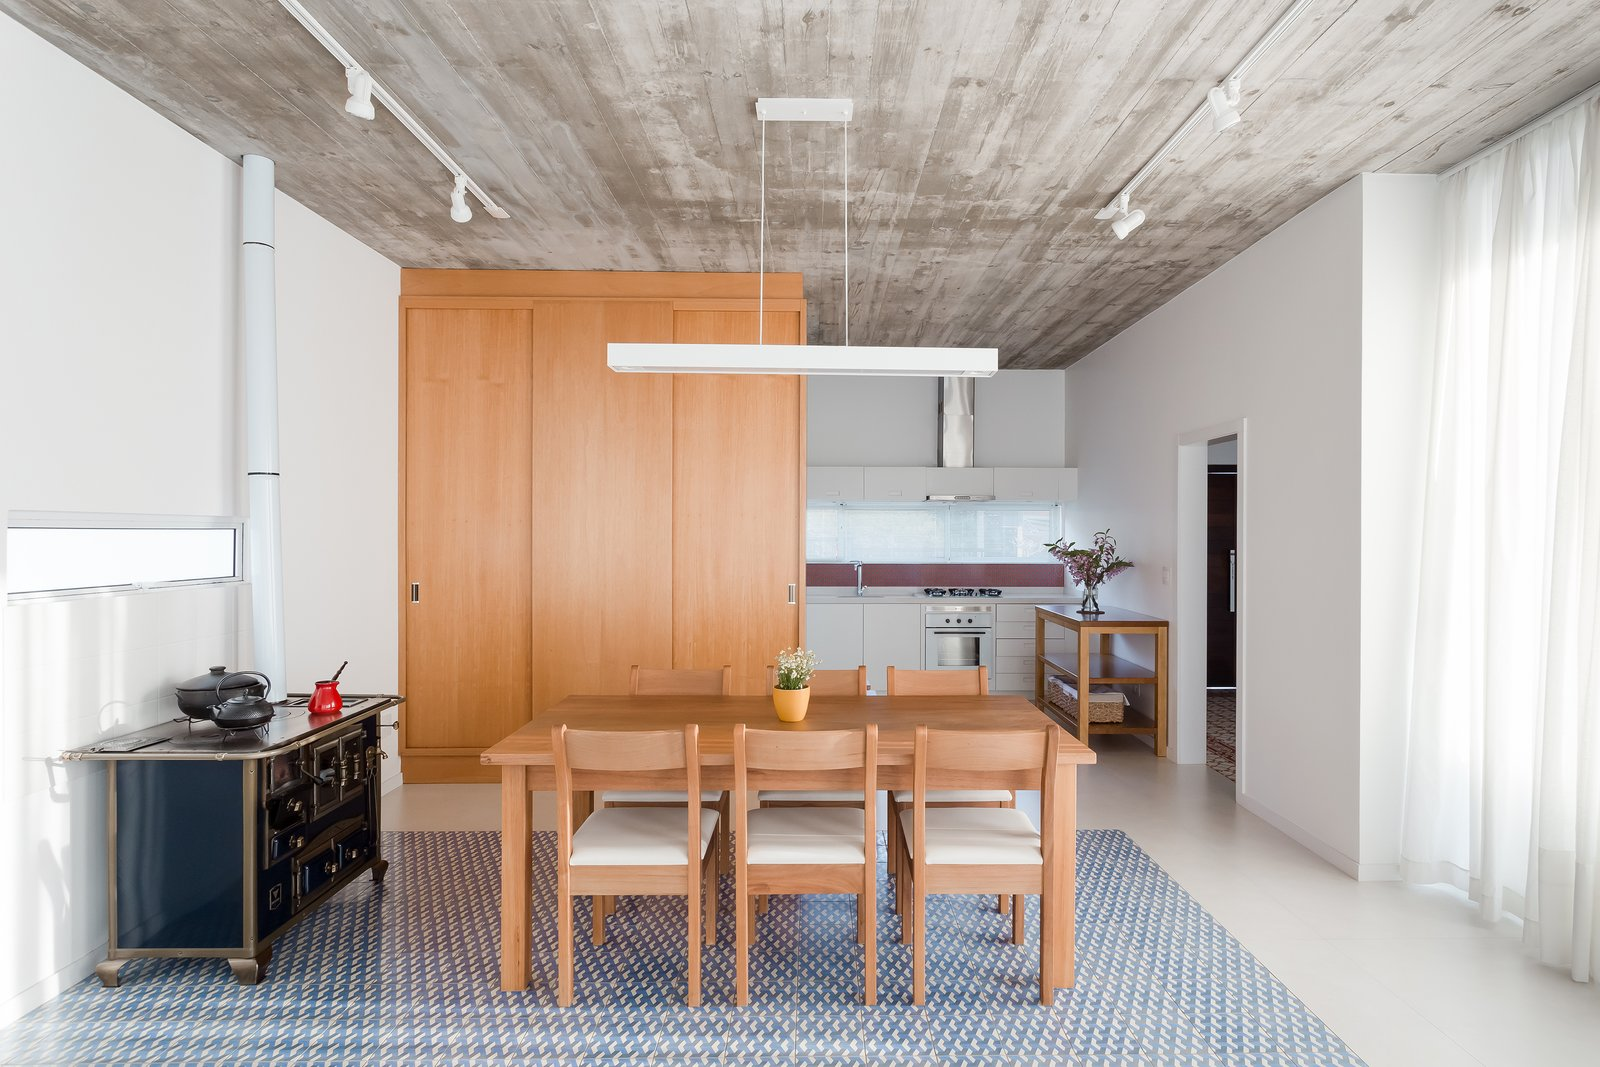 Tagged: Dining Room, Track Lighting, Table, Chair, and Ceramic Tile Floor.  View House by Barbara Becker